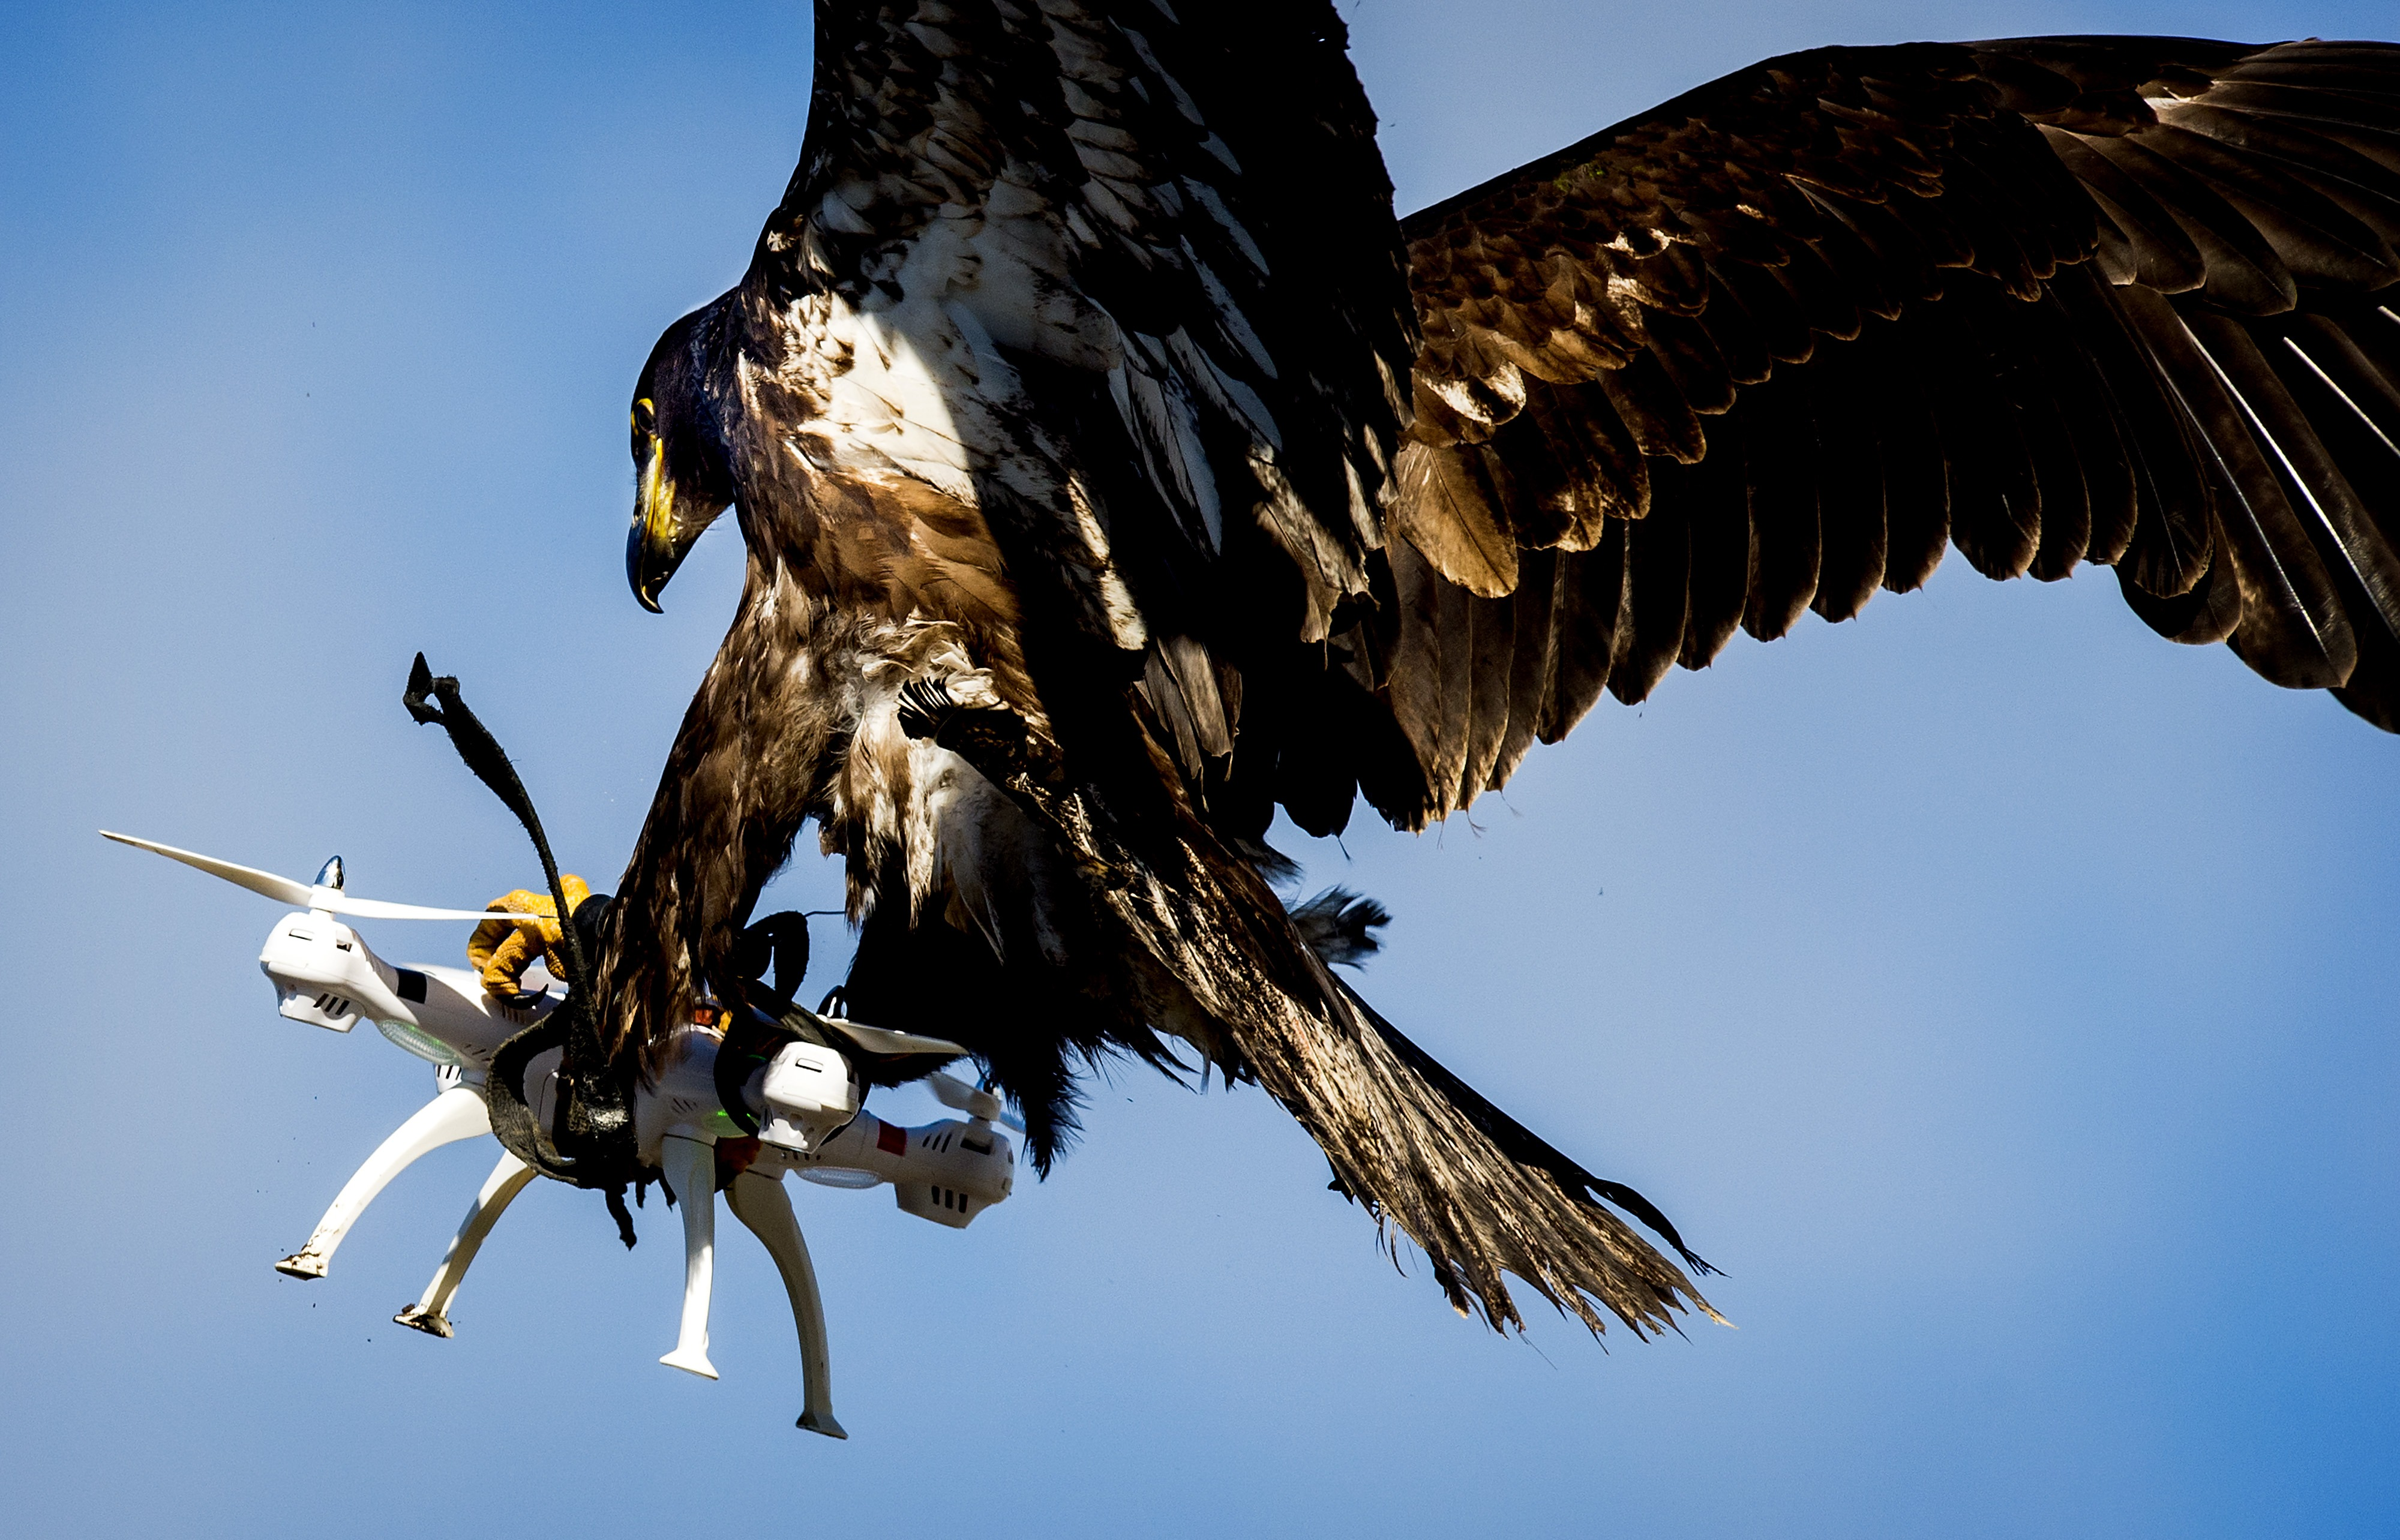 An eagle of the Guard from Above company, grasps a drone during a police exercise in Katwijk, on March 7, 2016. The bird of prey can get drones from the air by catching them with his legs. / AFP / ANP / Koen van Weel / Netherlands OUT (Photo credit should read KOEN VAN WEEL/AFP/Getty Images)